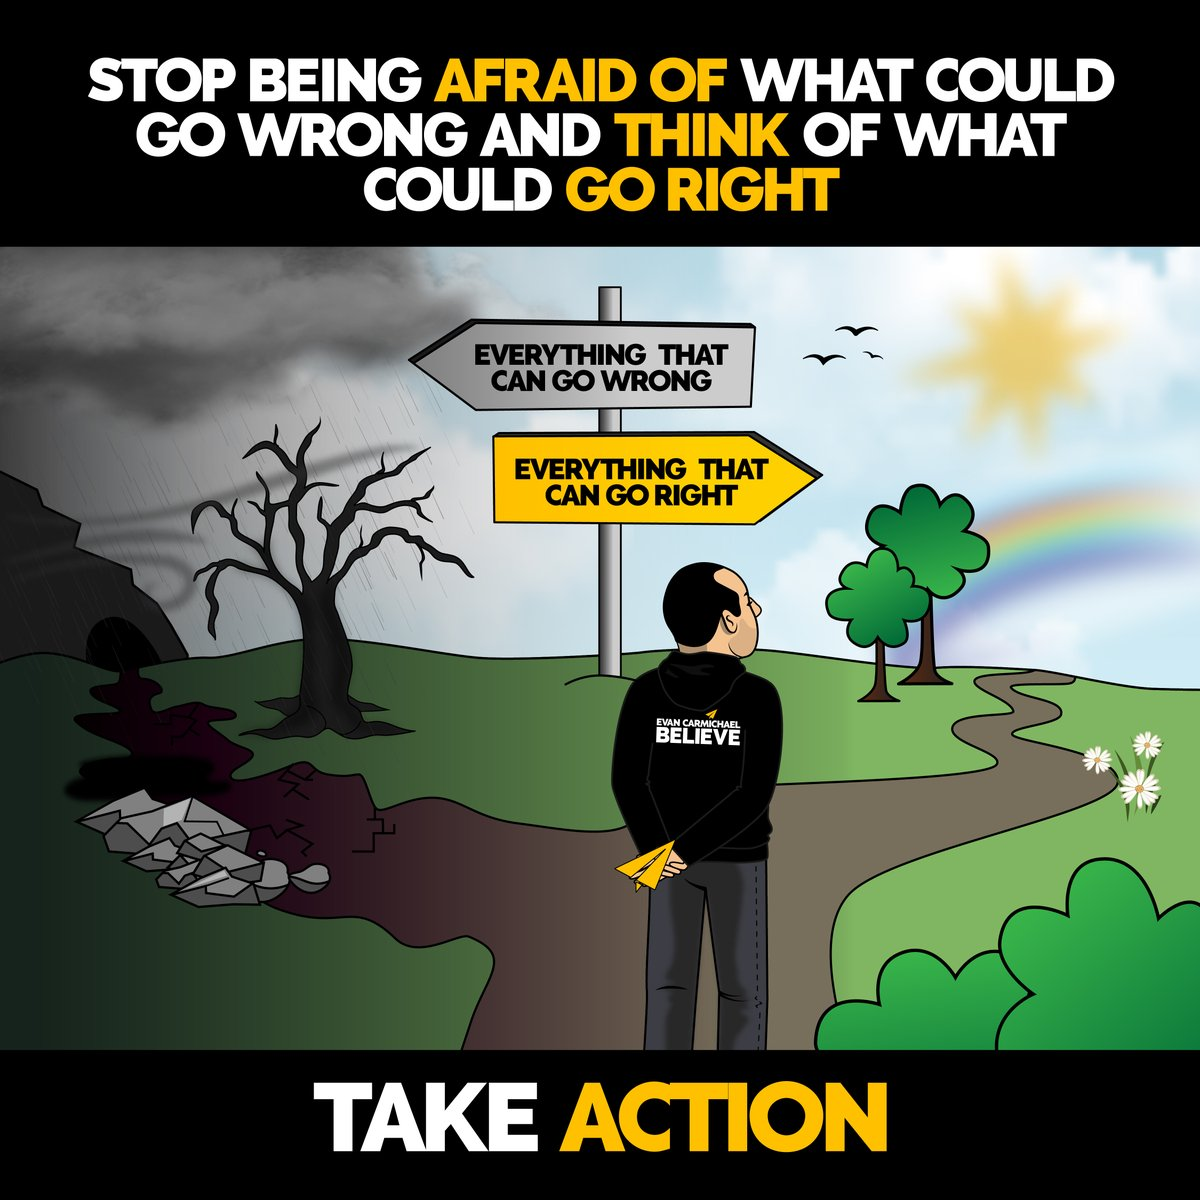 Leave a 💛💛 below if this message spoke to you 👇  Stop being afraid of what could go wrong and think of what could go right.  ______________________________________  #bestadvice #personaldevelopment #takemassiveaction https://t.co/j5peaNvK44